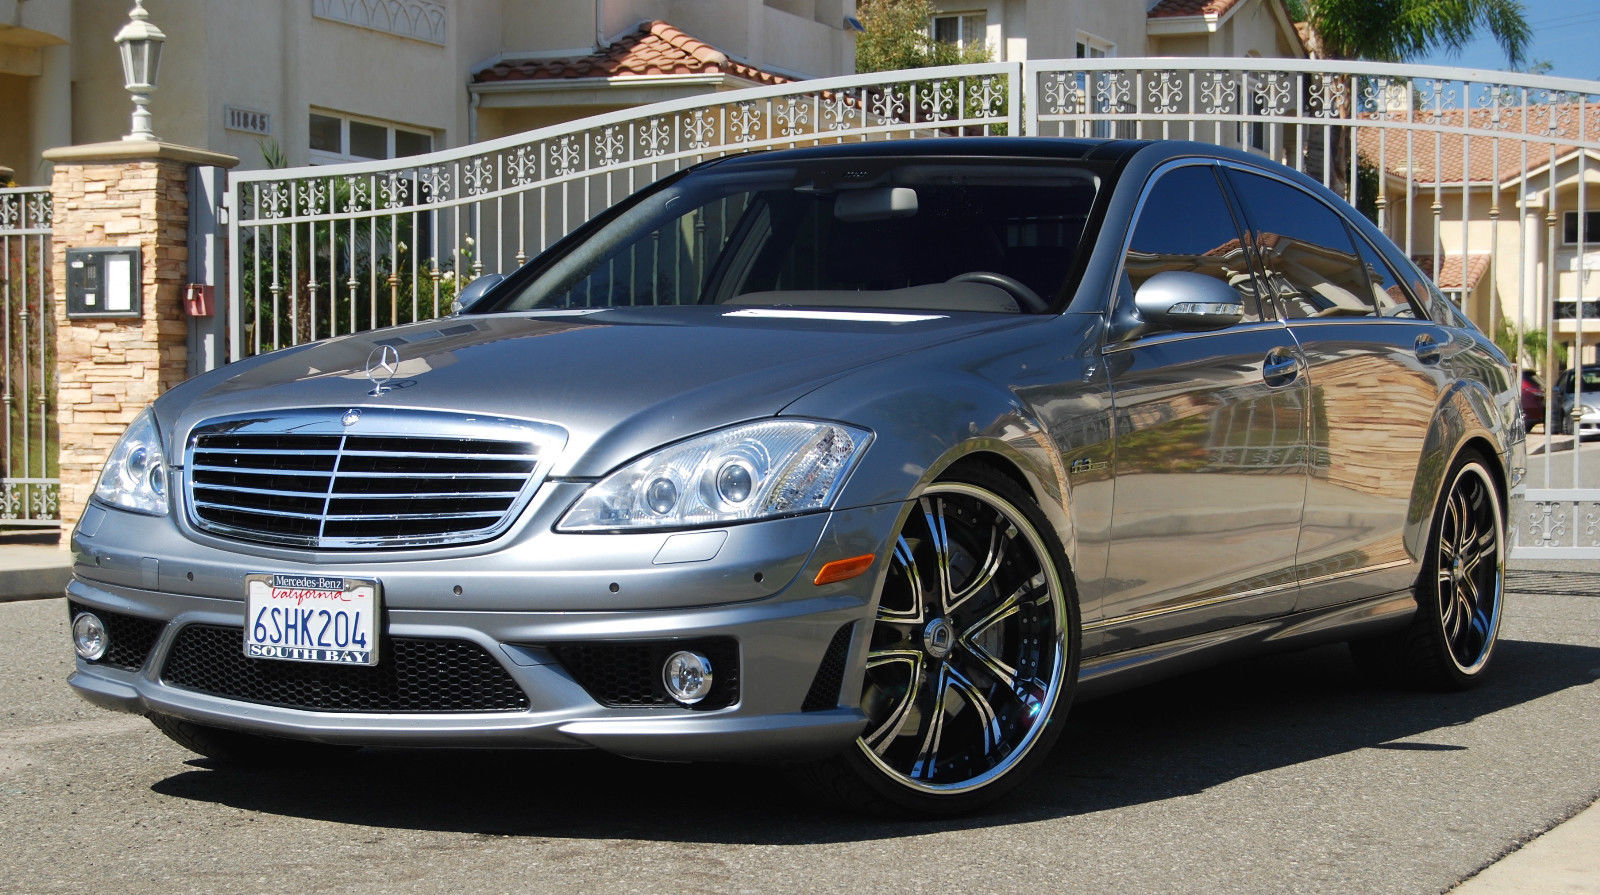 Mercedes benz w221 s63 amg on 22 asanti wheels benztuning for Mercedes benz wheels rims